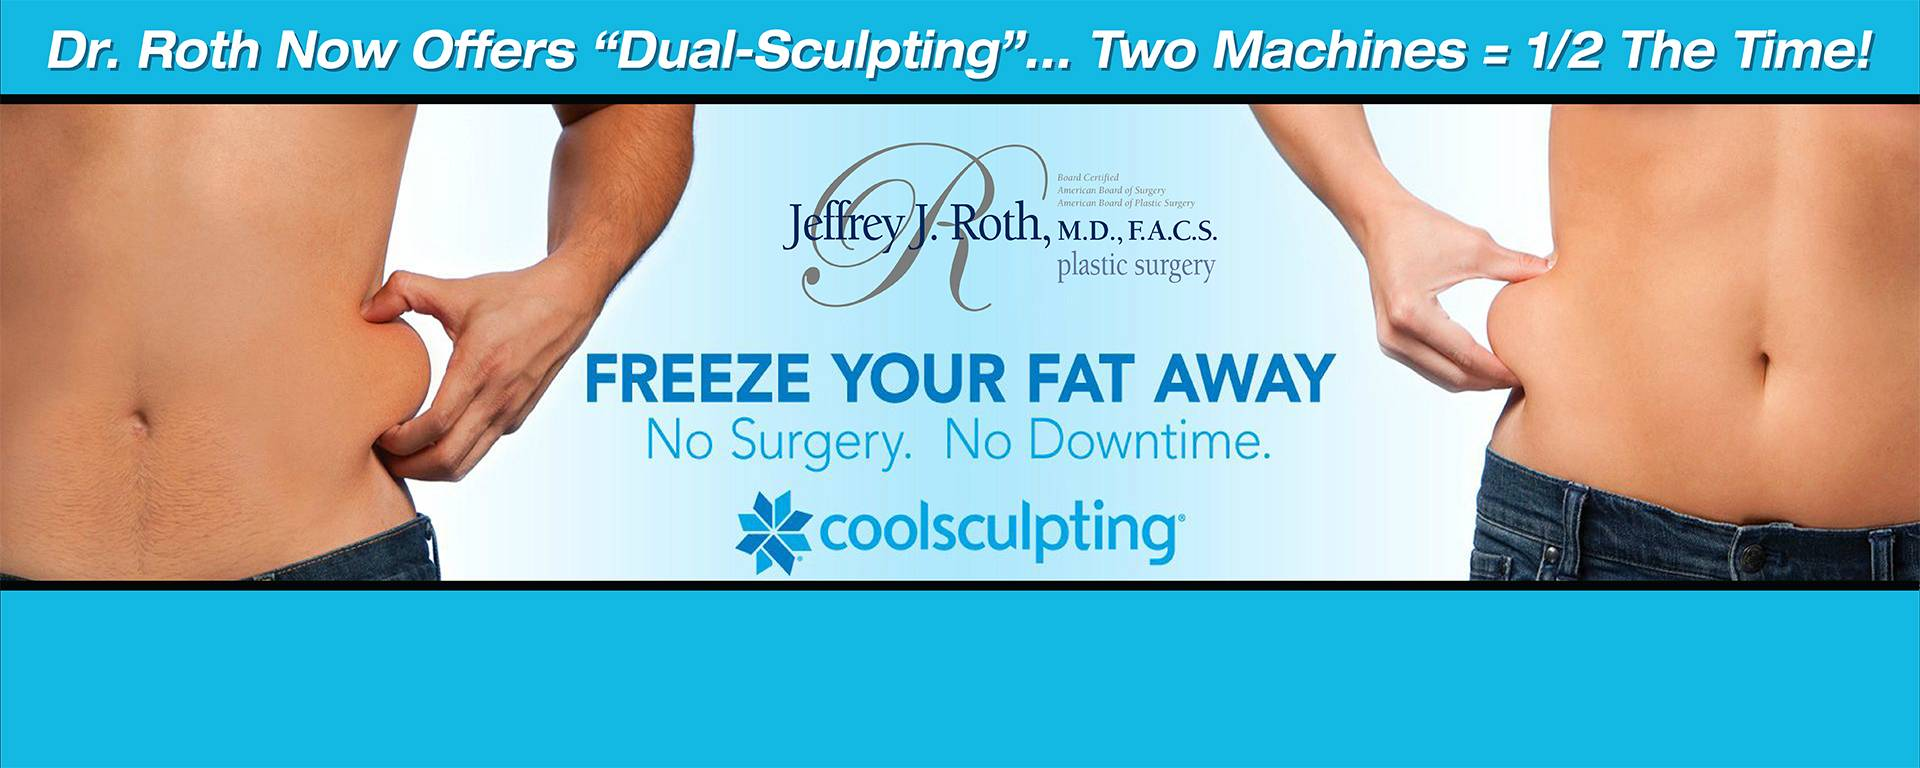 "You've probably heard the phrase ""Two Is Better Than One"" at some point in your life. Dr. Roth has set out to guarantee this statement rings true with the addition of a second CoolSculpting® machine, that's TWICE THE ICE!"